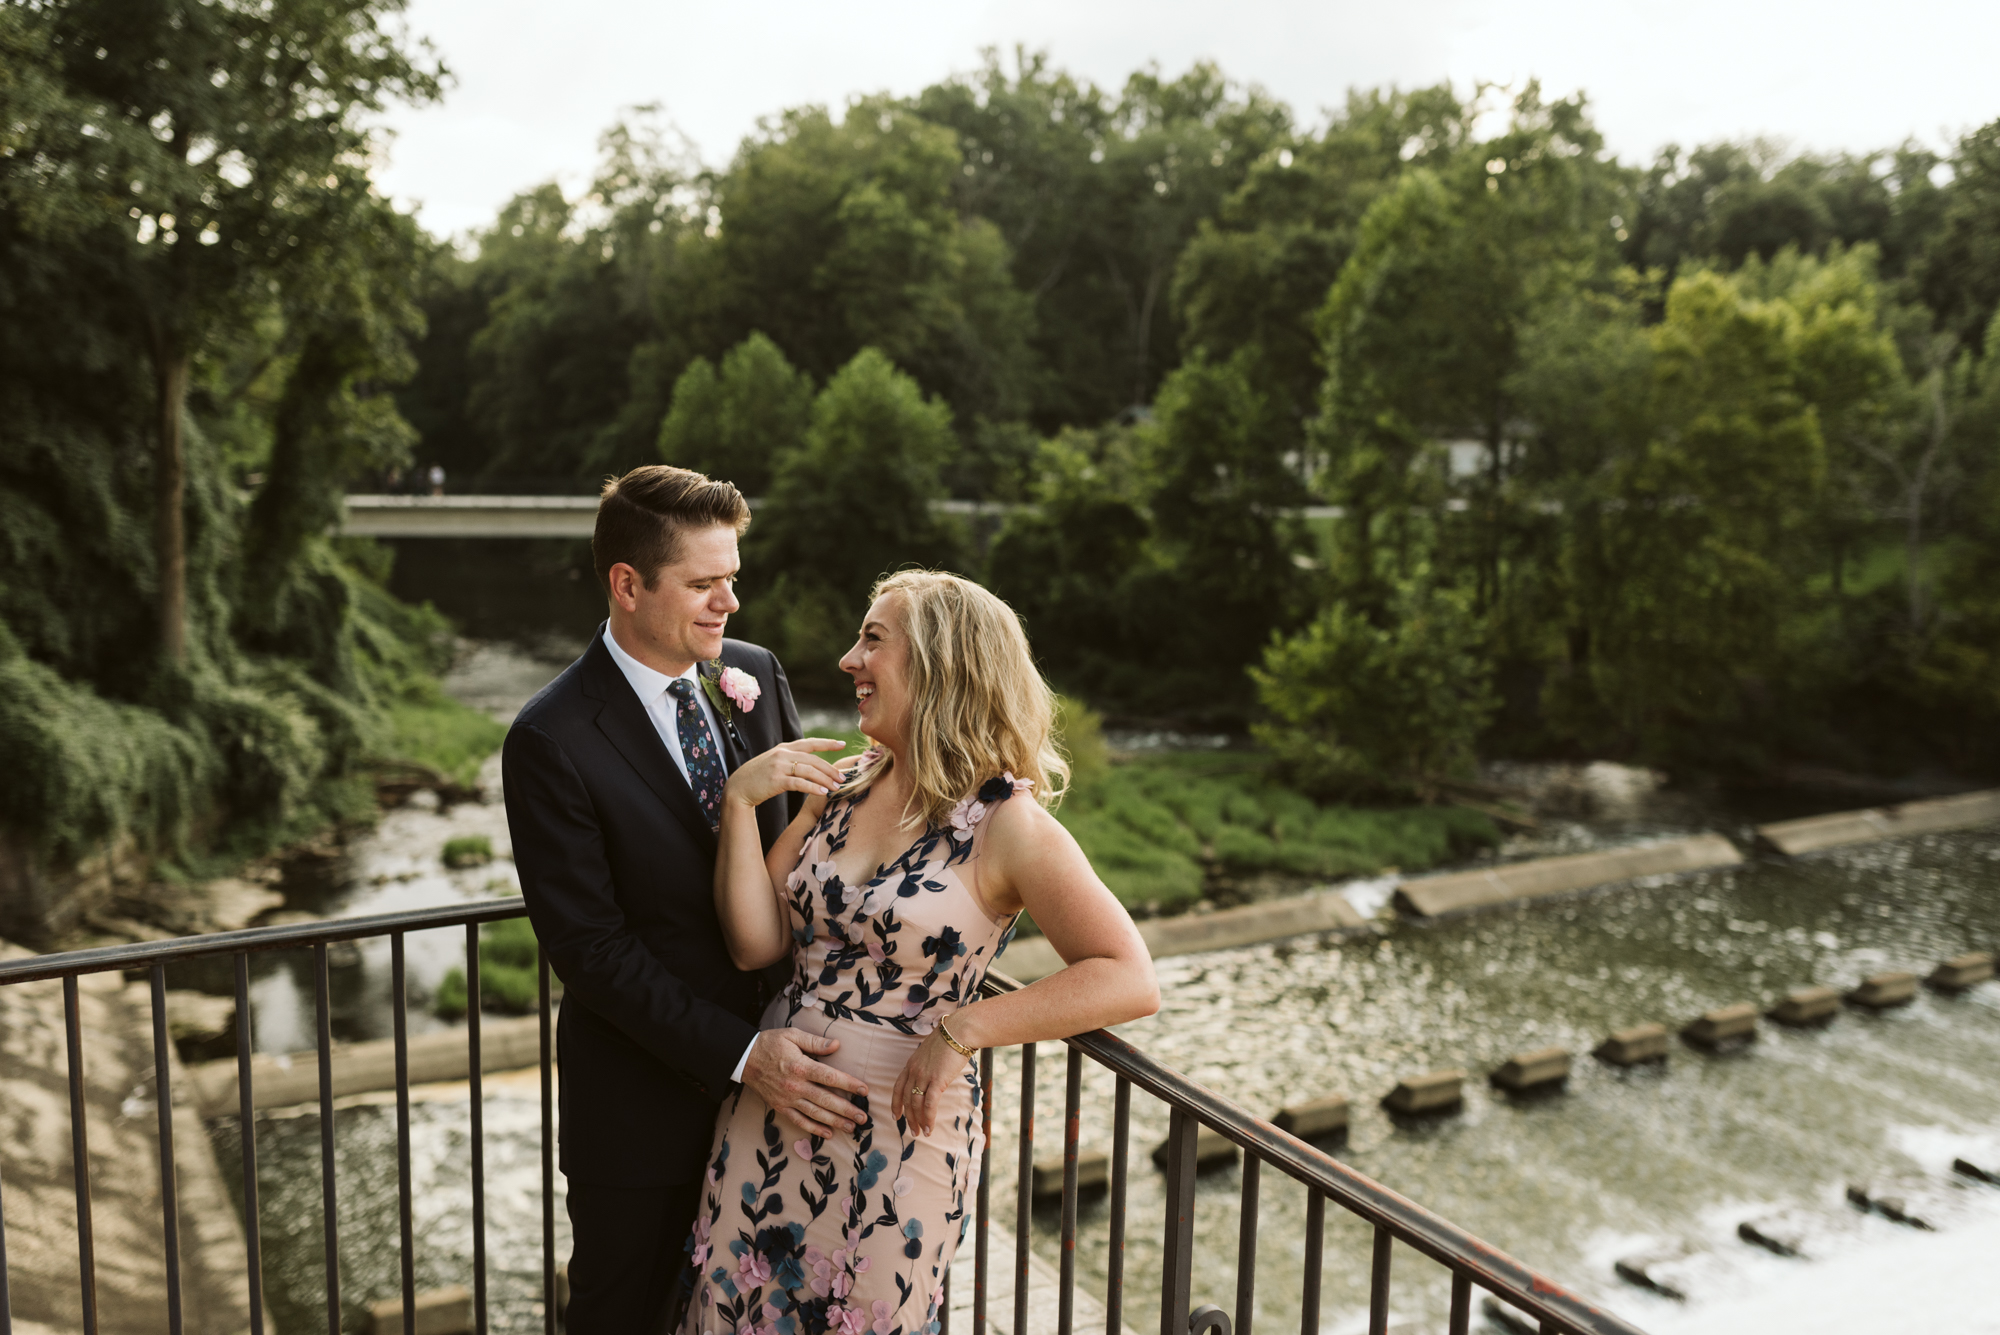 Pop-up Ceremony, Outdoor Wedding, Casual, Simple, Lake Roland, Baltimore, Maryland Wedding Photographer, Laid Back, Bride and Groom Leaning on Bridge, Bonobos Tie